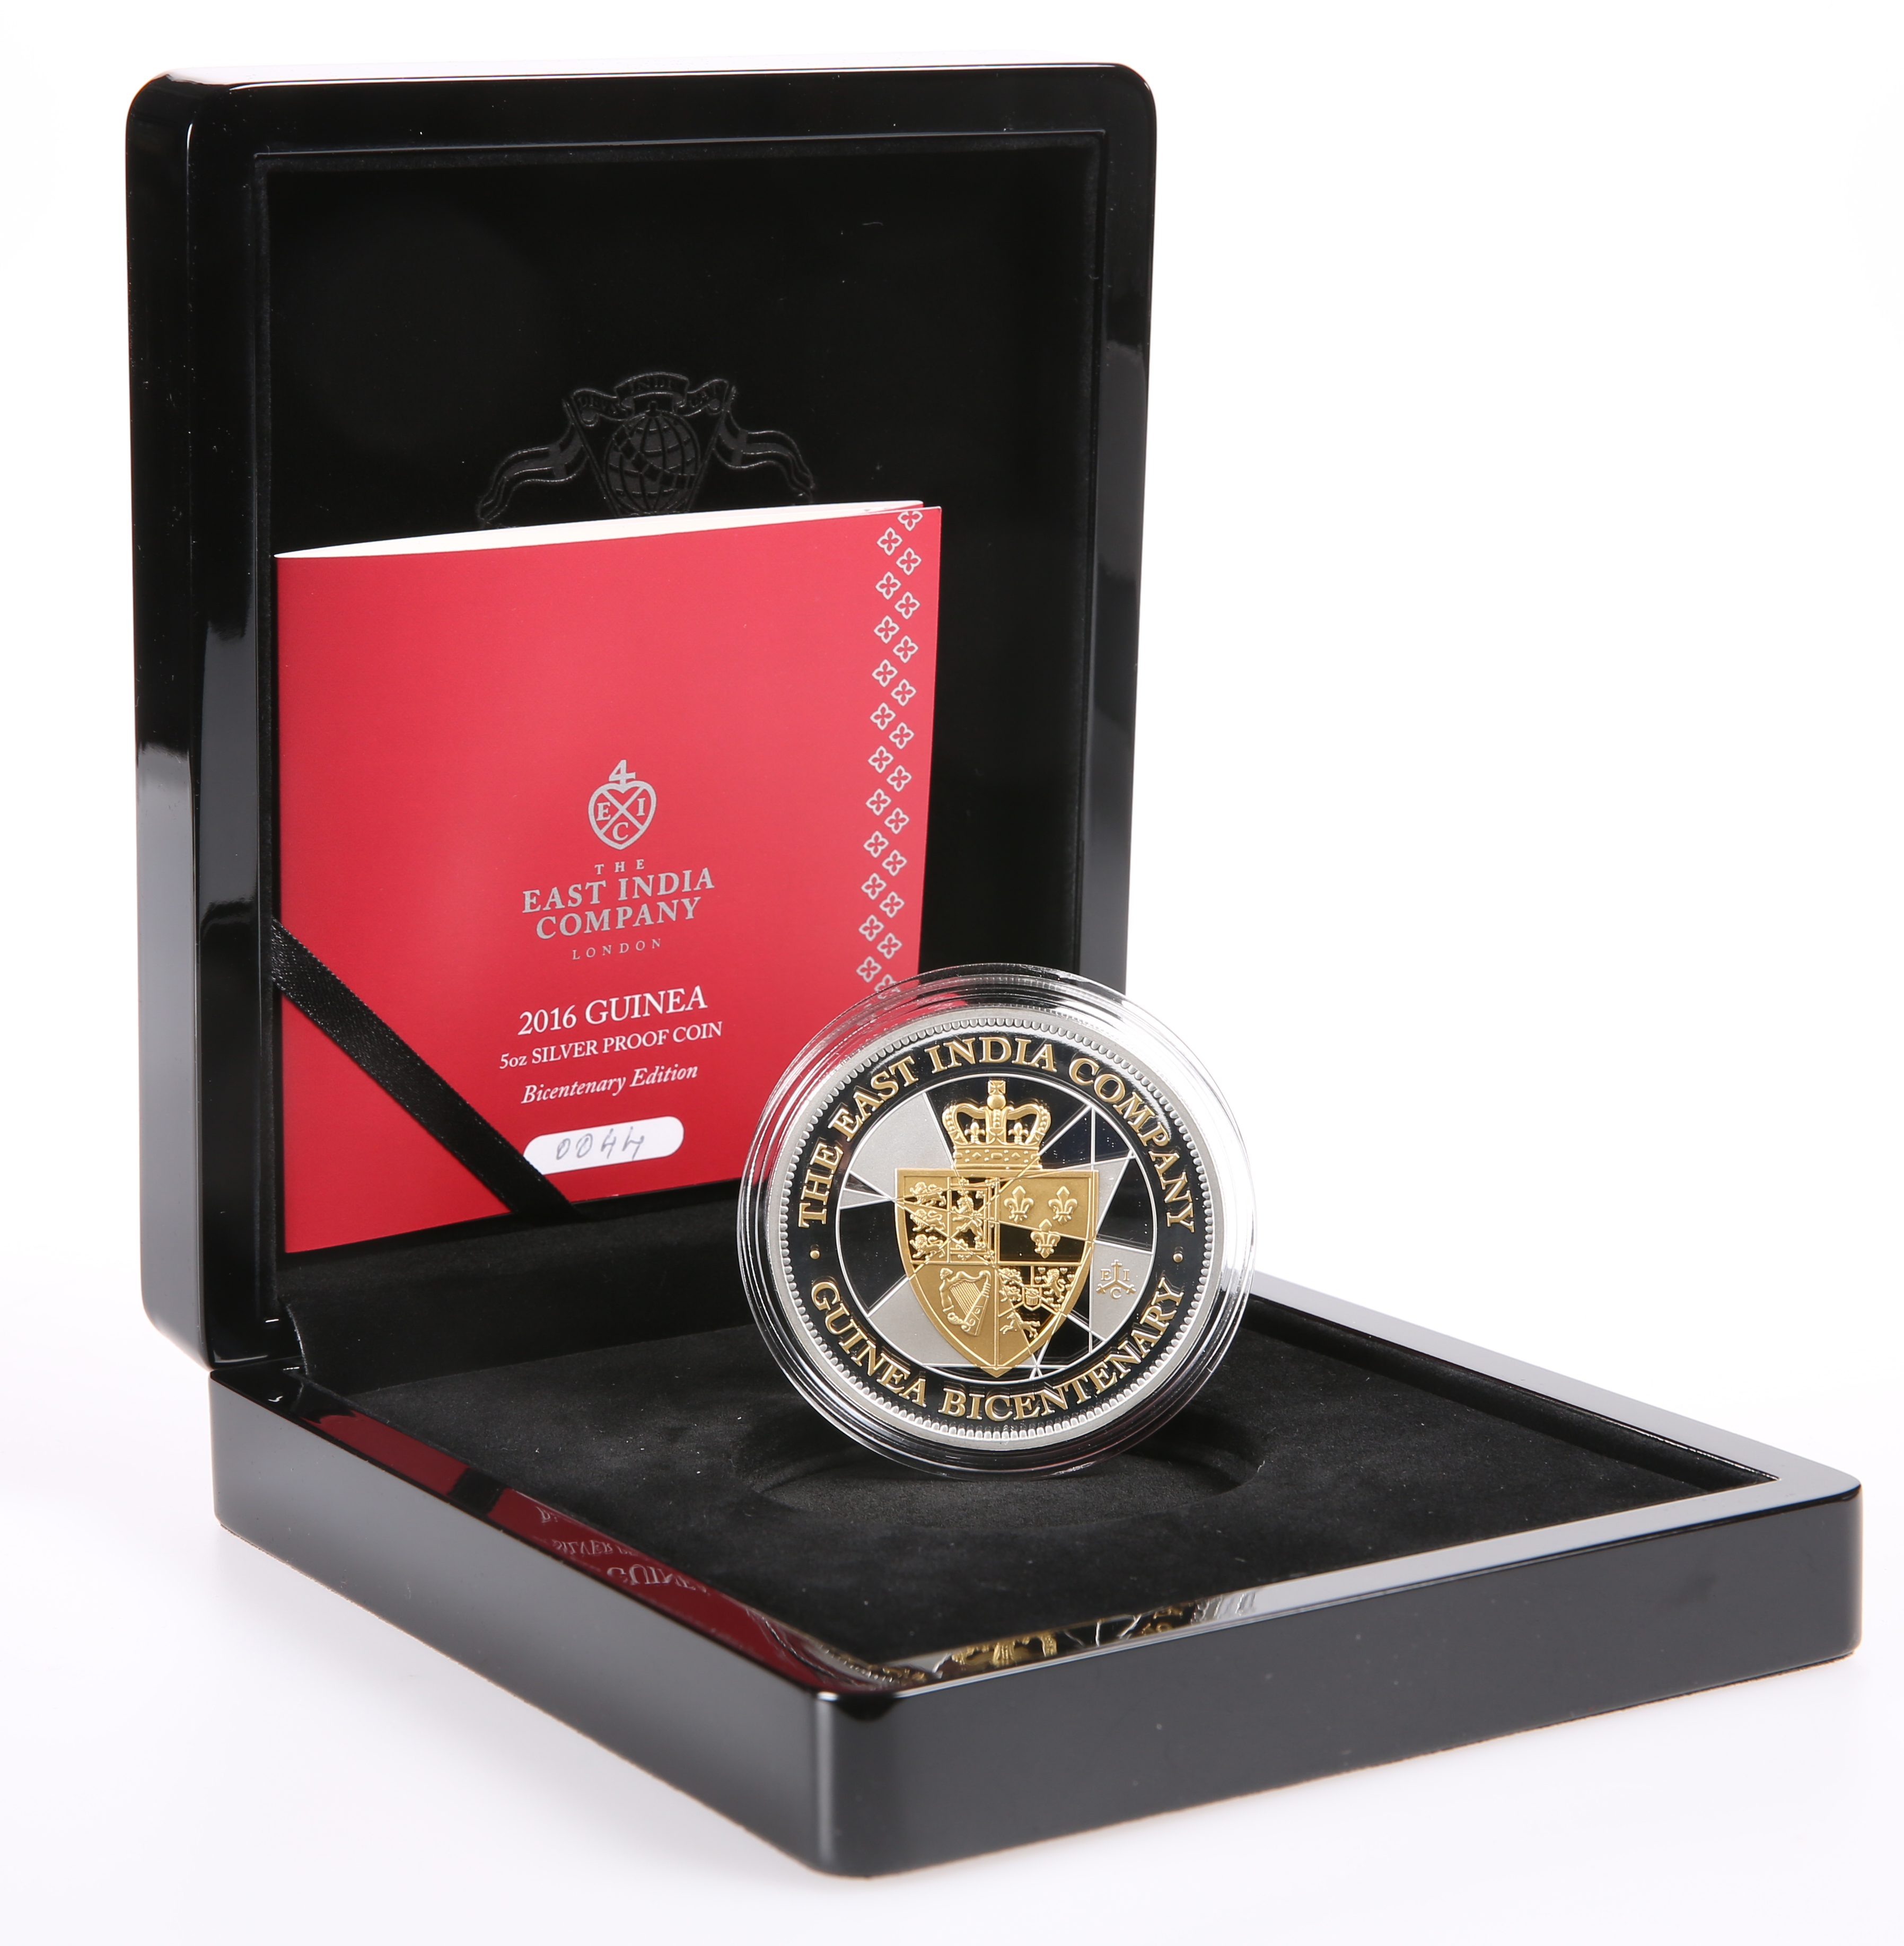 AN EAST INDIA COMPANY 2016 GUINEA 5OZ SILVER PROOF COIN, Bicentenary Edition, boxed with COA no. - Image 2 of 2